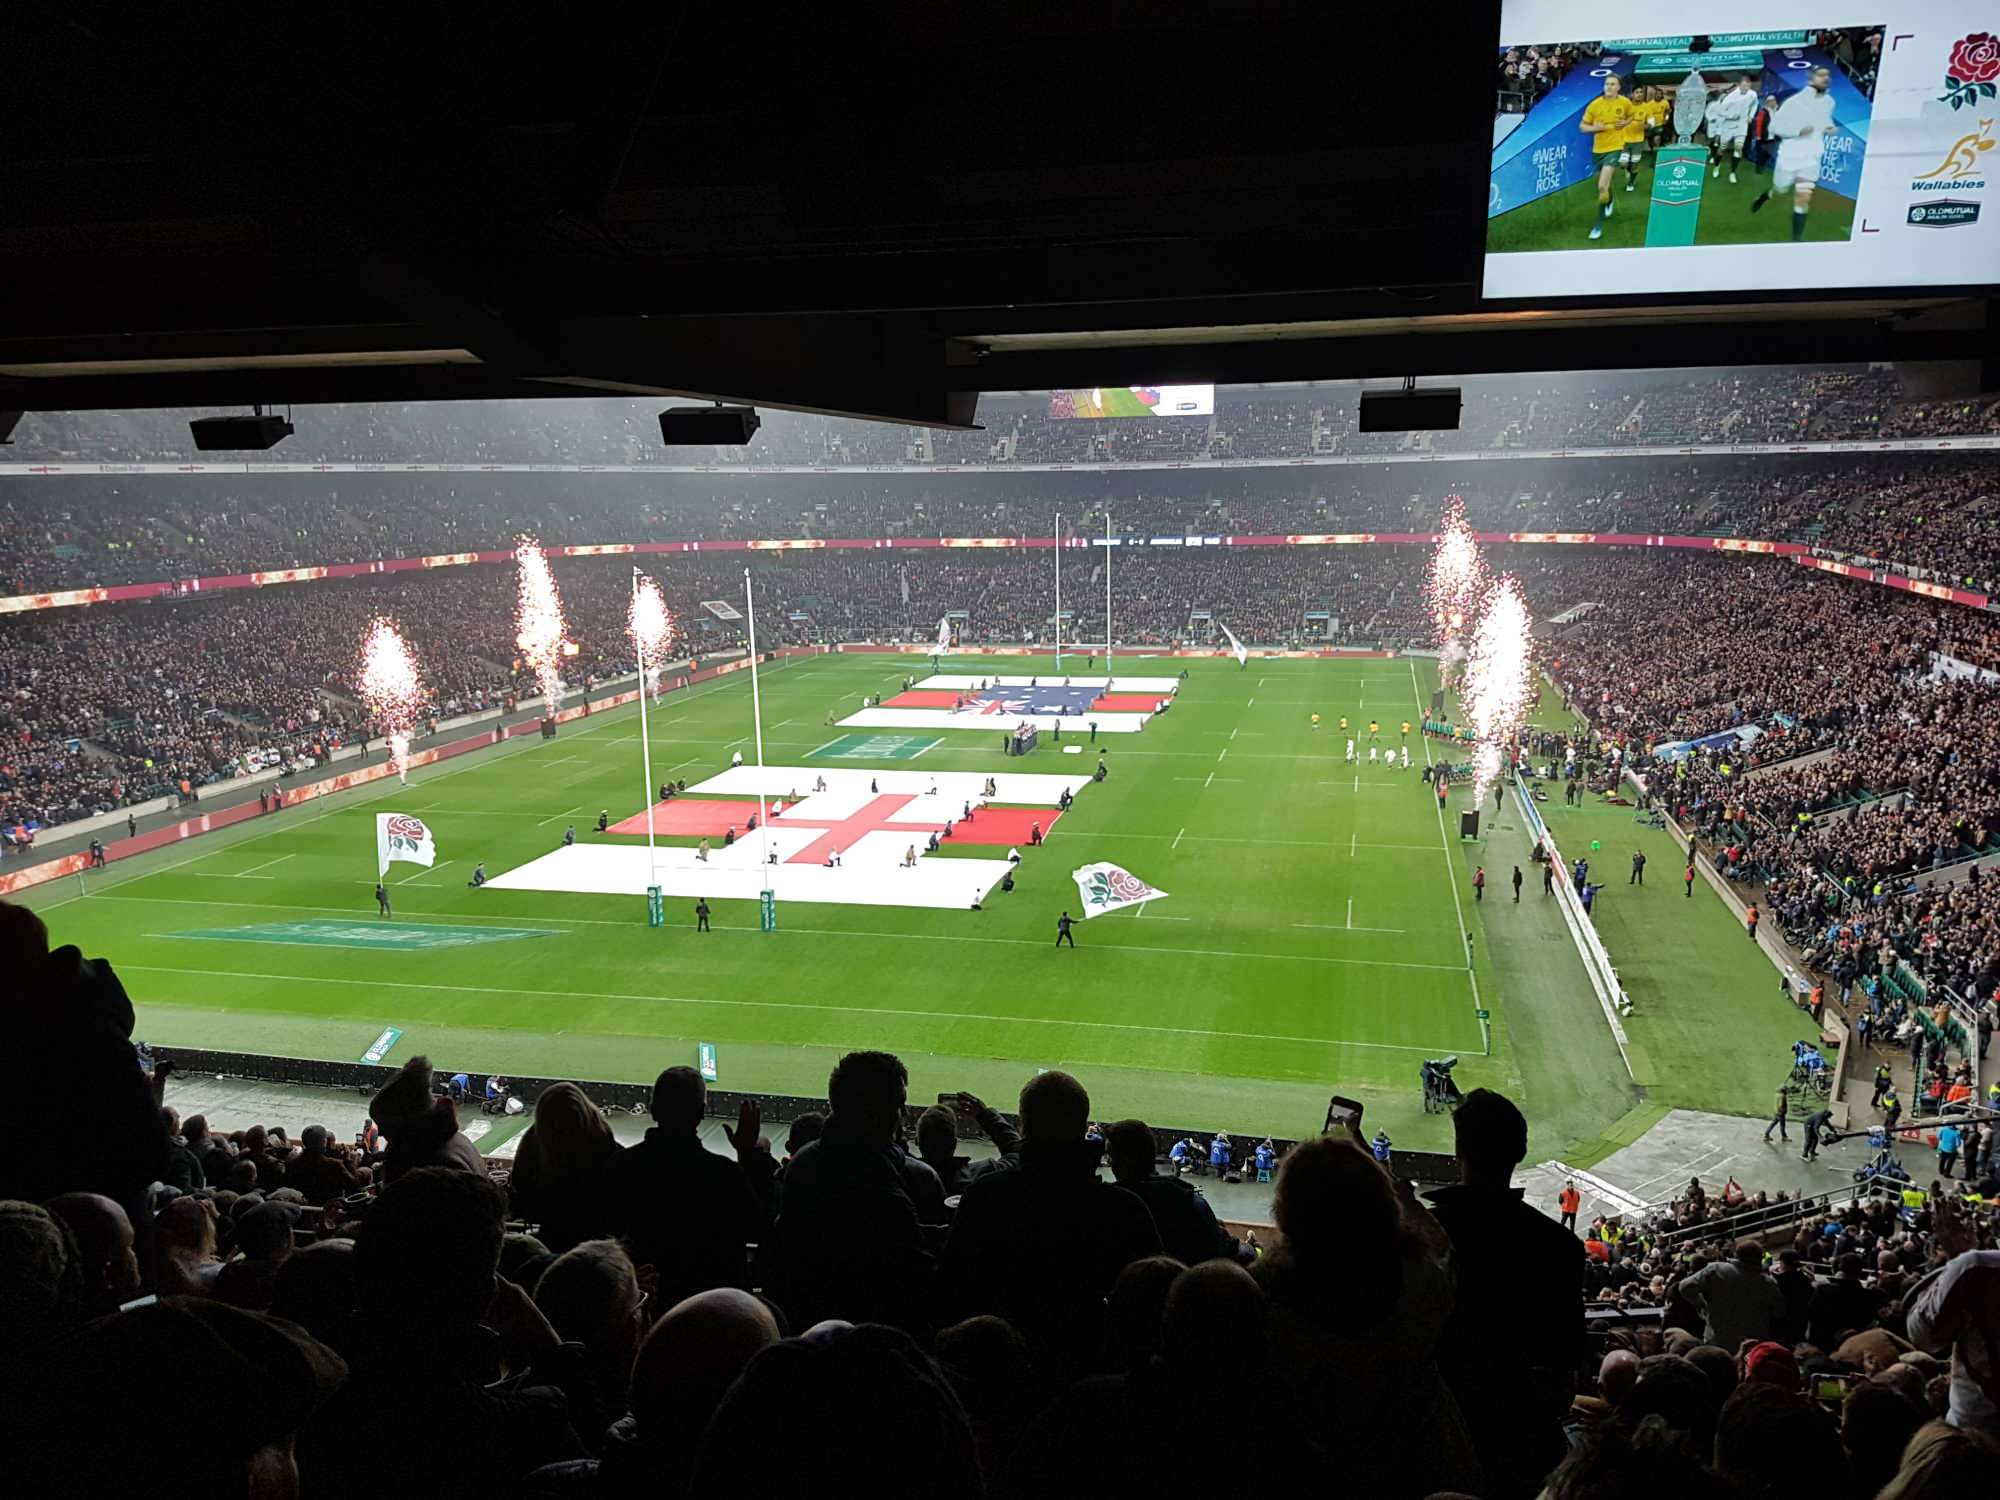 View from Seat Block M18 at Twickenham Stadium